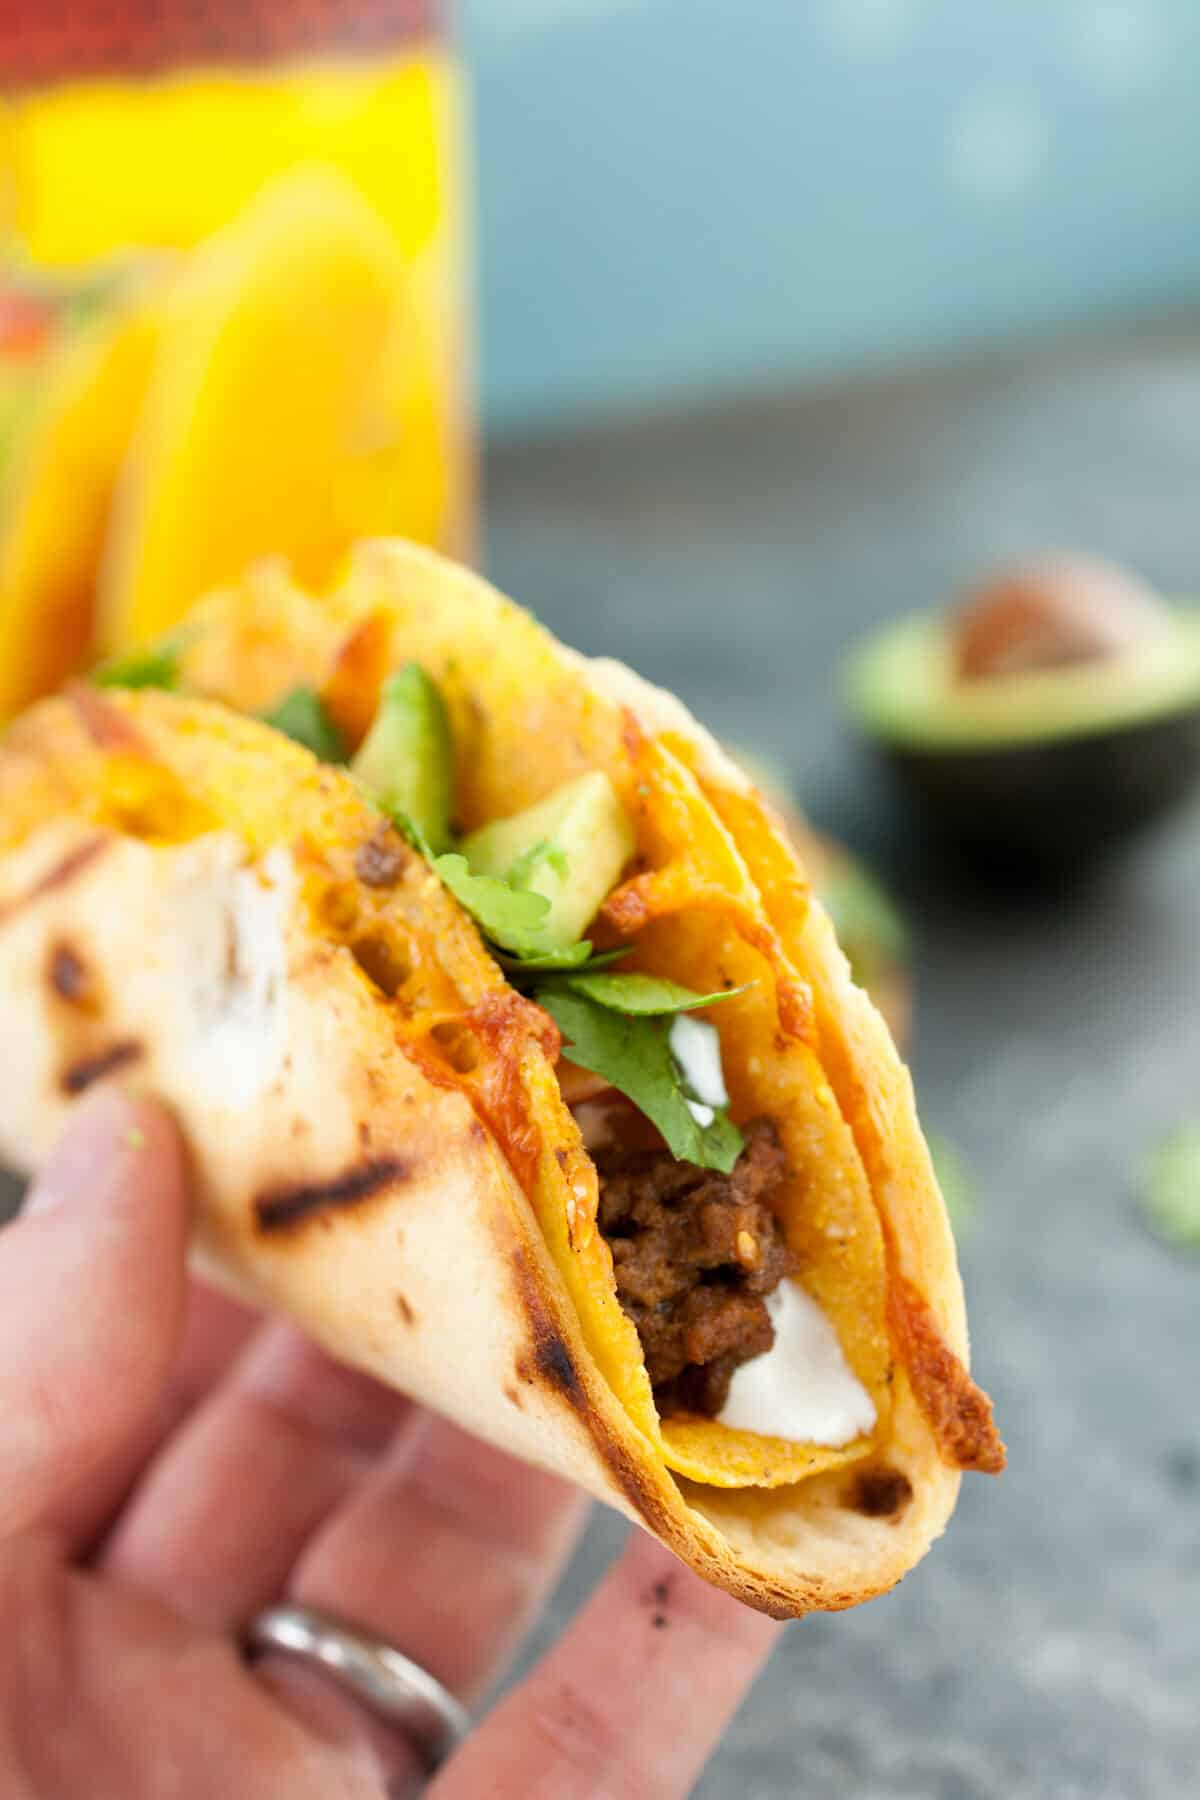 Quesadilla Taco Shells: Want to kick your taco game up a notch this year? Make these delicious quesadilla taco shells and stuff them to your heart's desire! | macheesmo.com